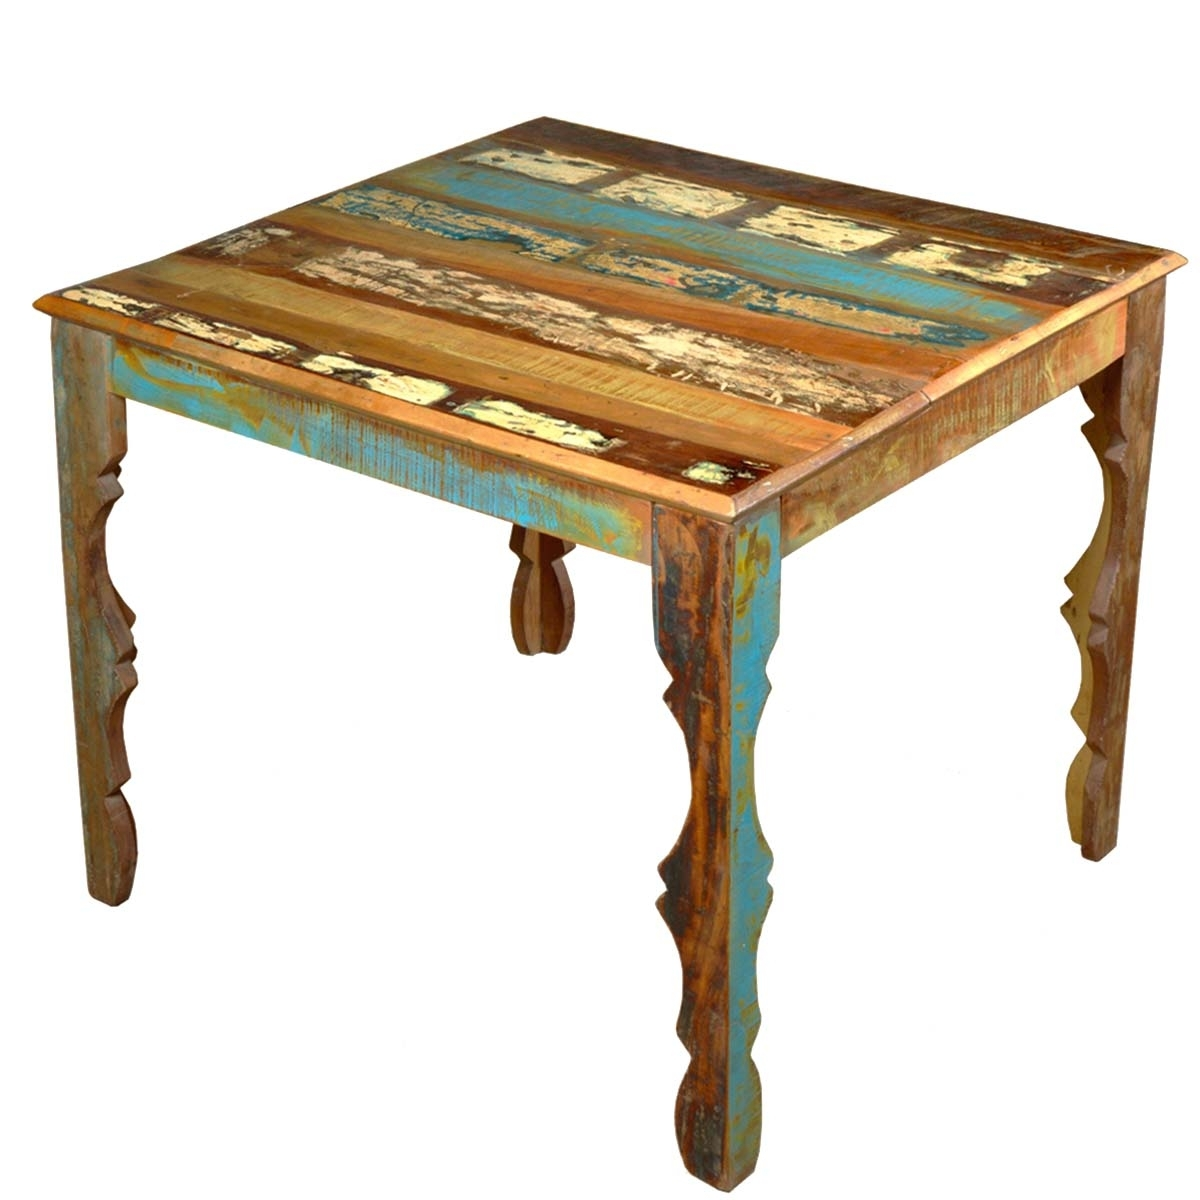 """Cheap Reclaimed Wood Dining Tables Pertaining To Well Known Rustic Reclaimed Wood 36"""" Square Dining Table W Decorative Legs (View 12 of 25)"""